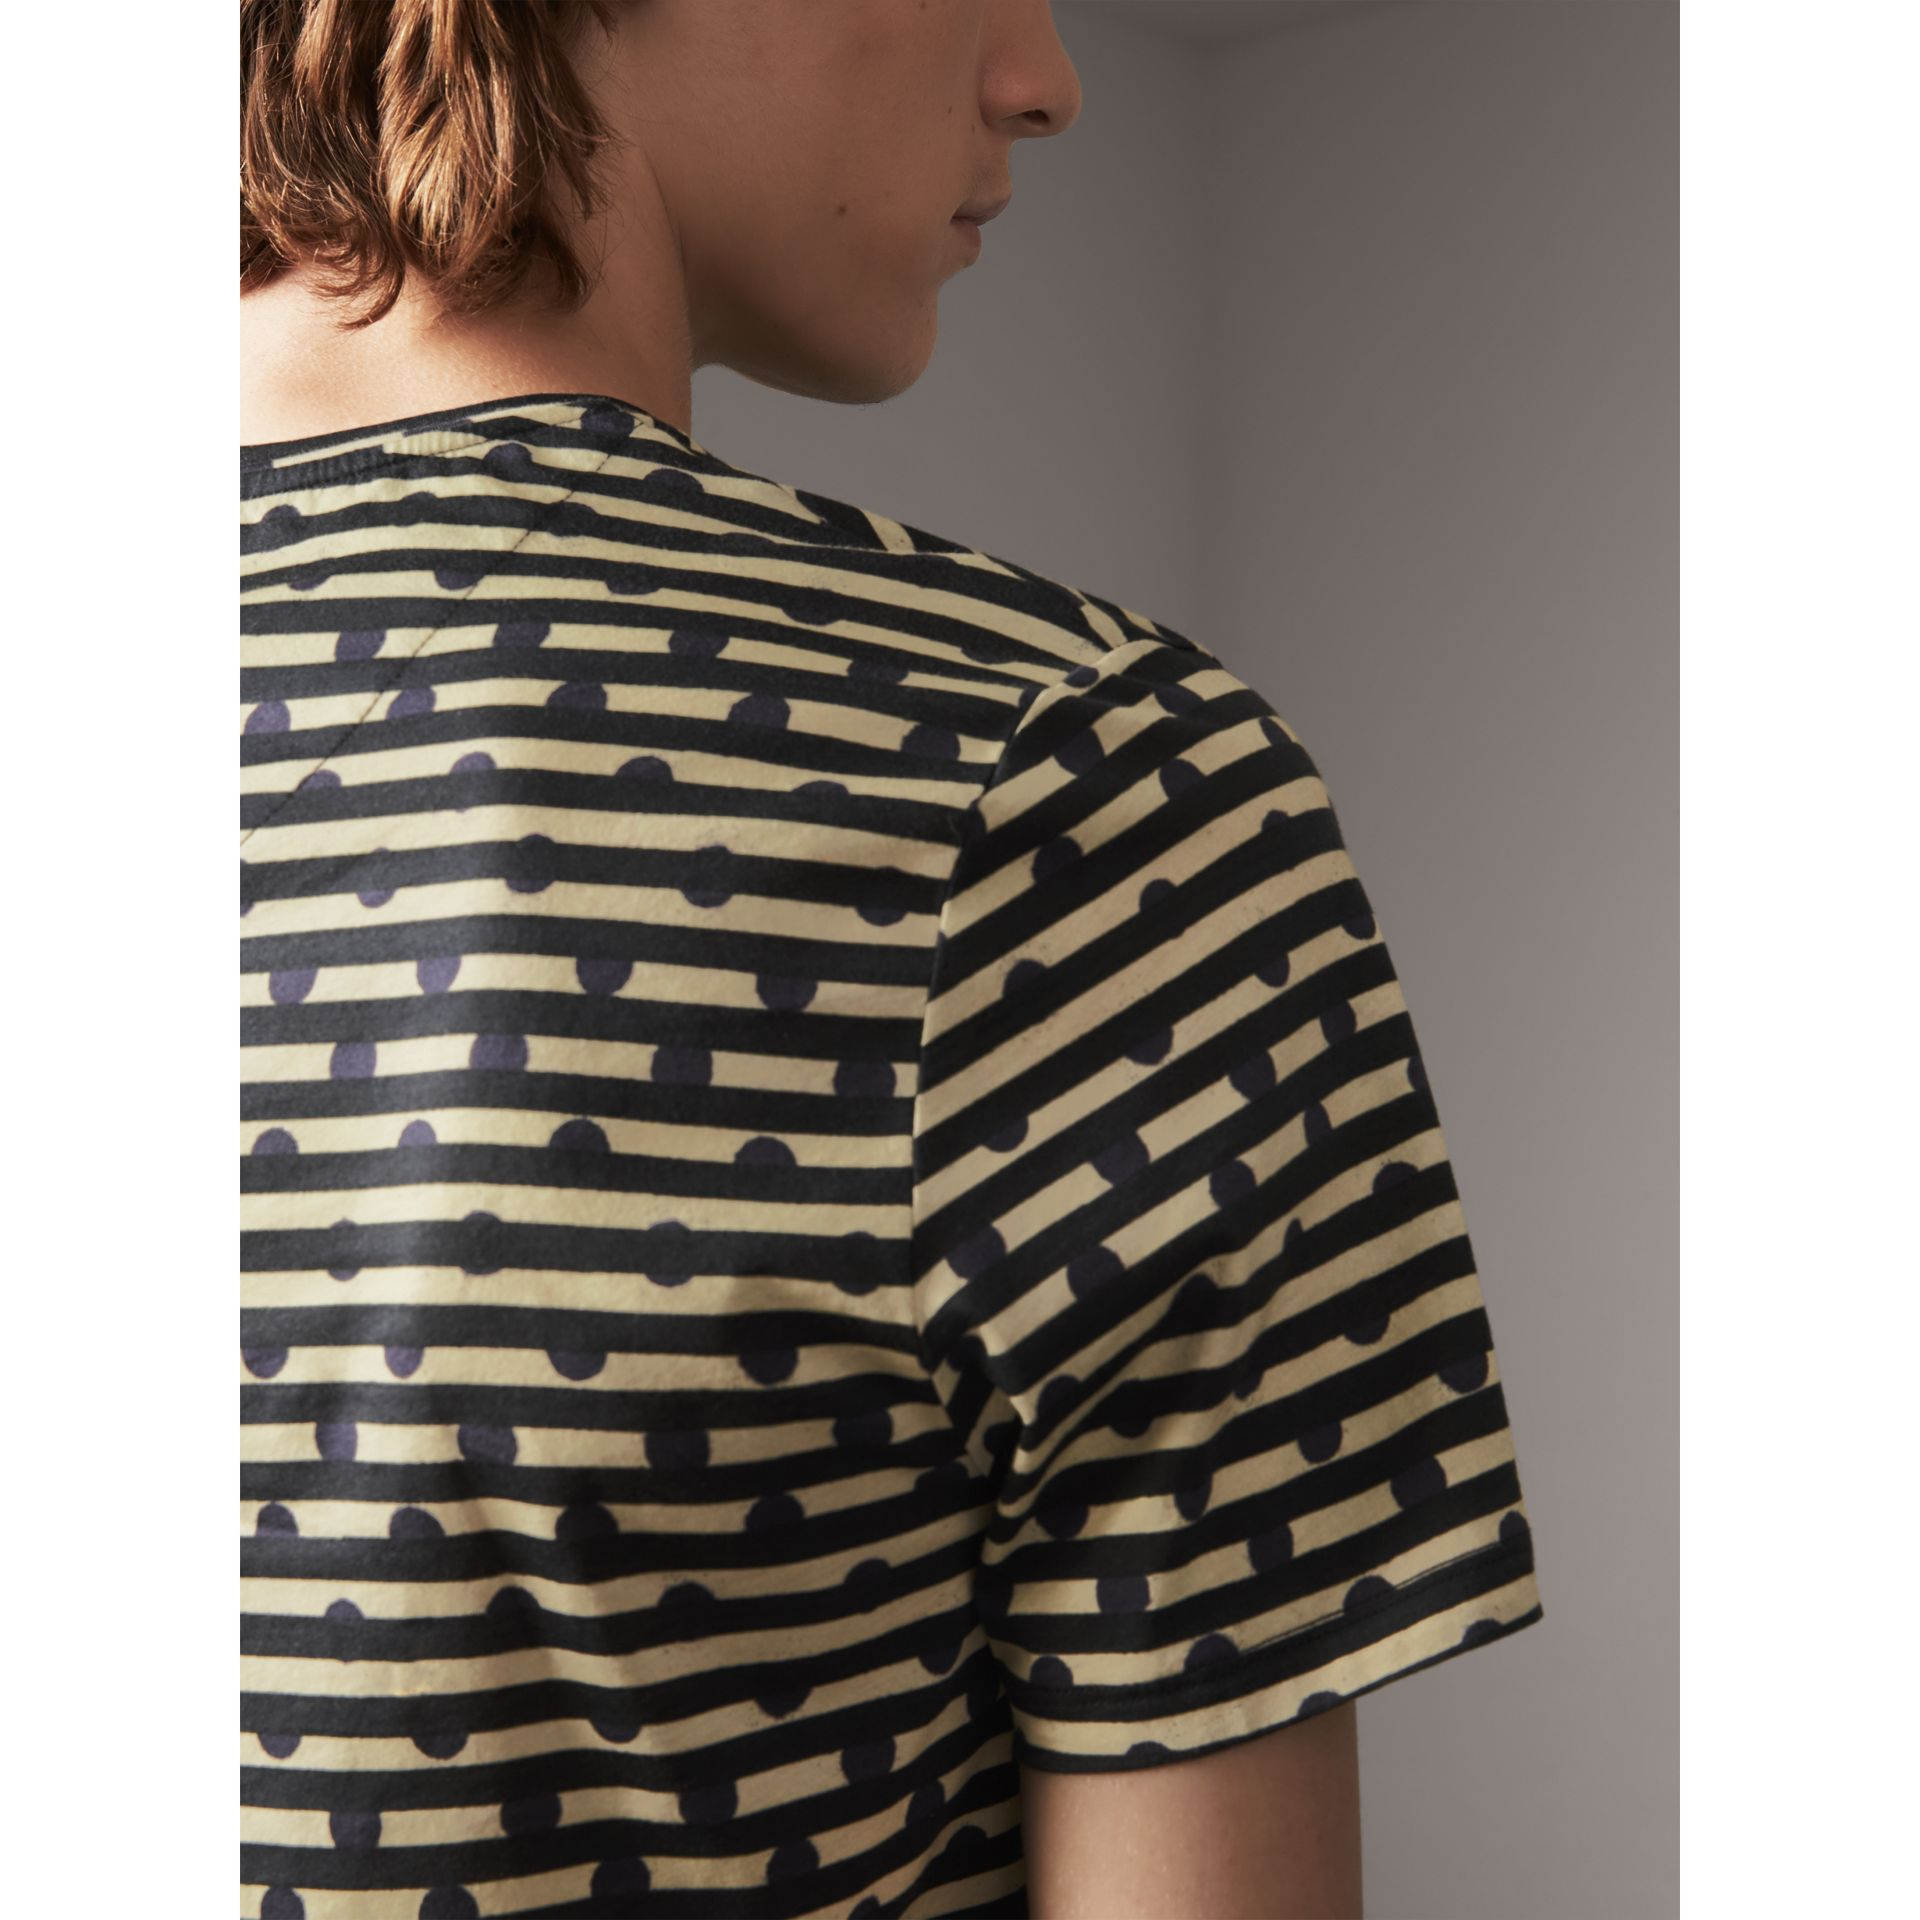 Spot and Stripe Print Cotton T-shirt in Navy - Men | Burberry United Kingdom - gallery image 1